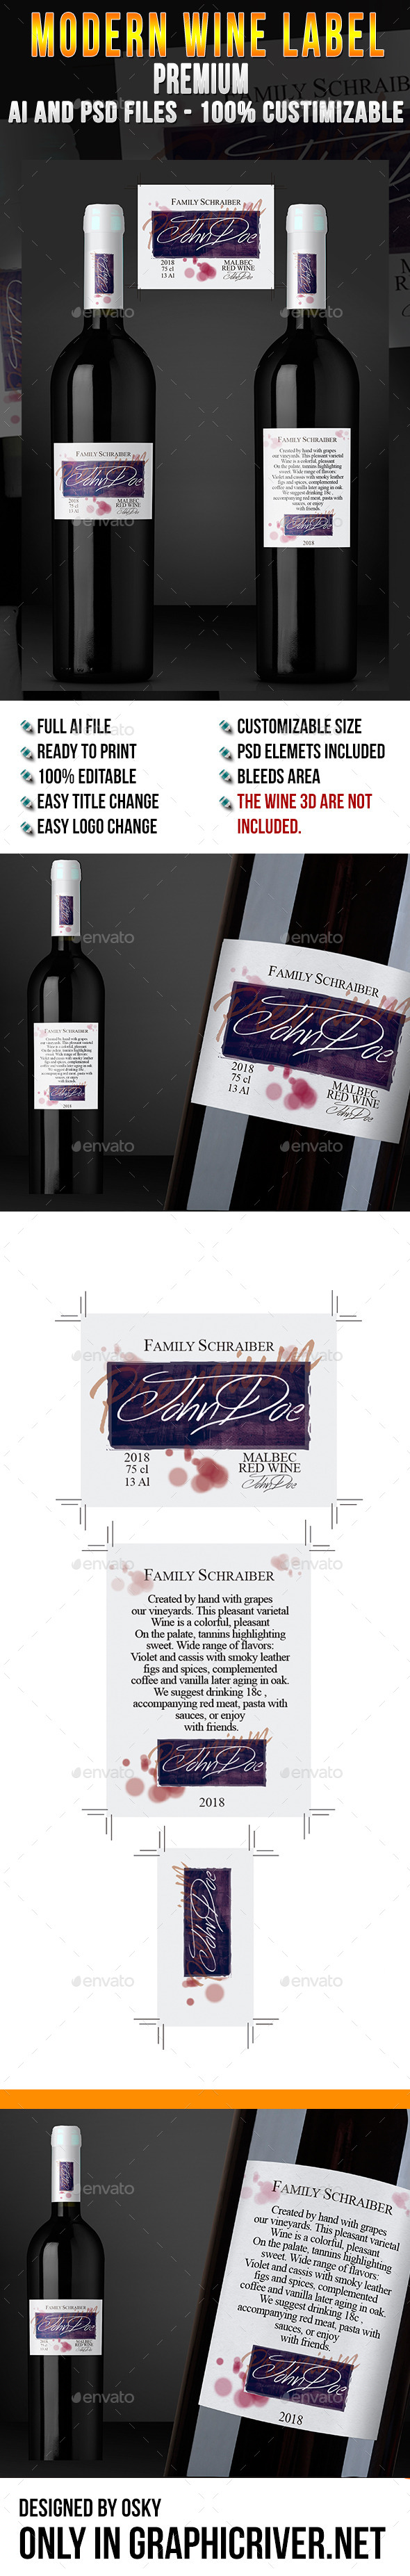 GraphicRiver Modern Wine Label Premium 9276959